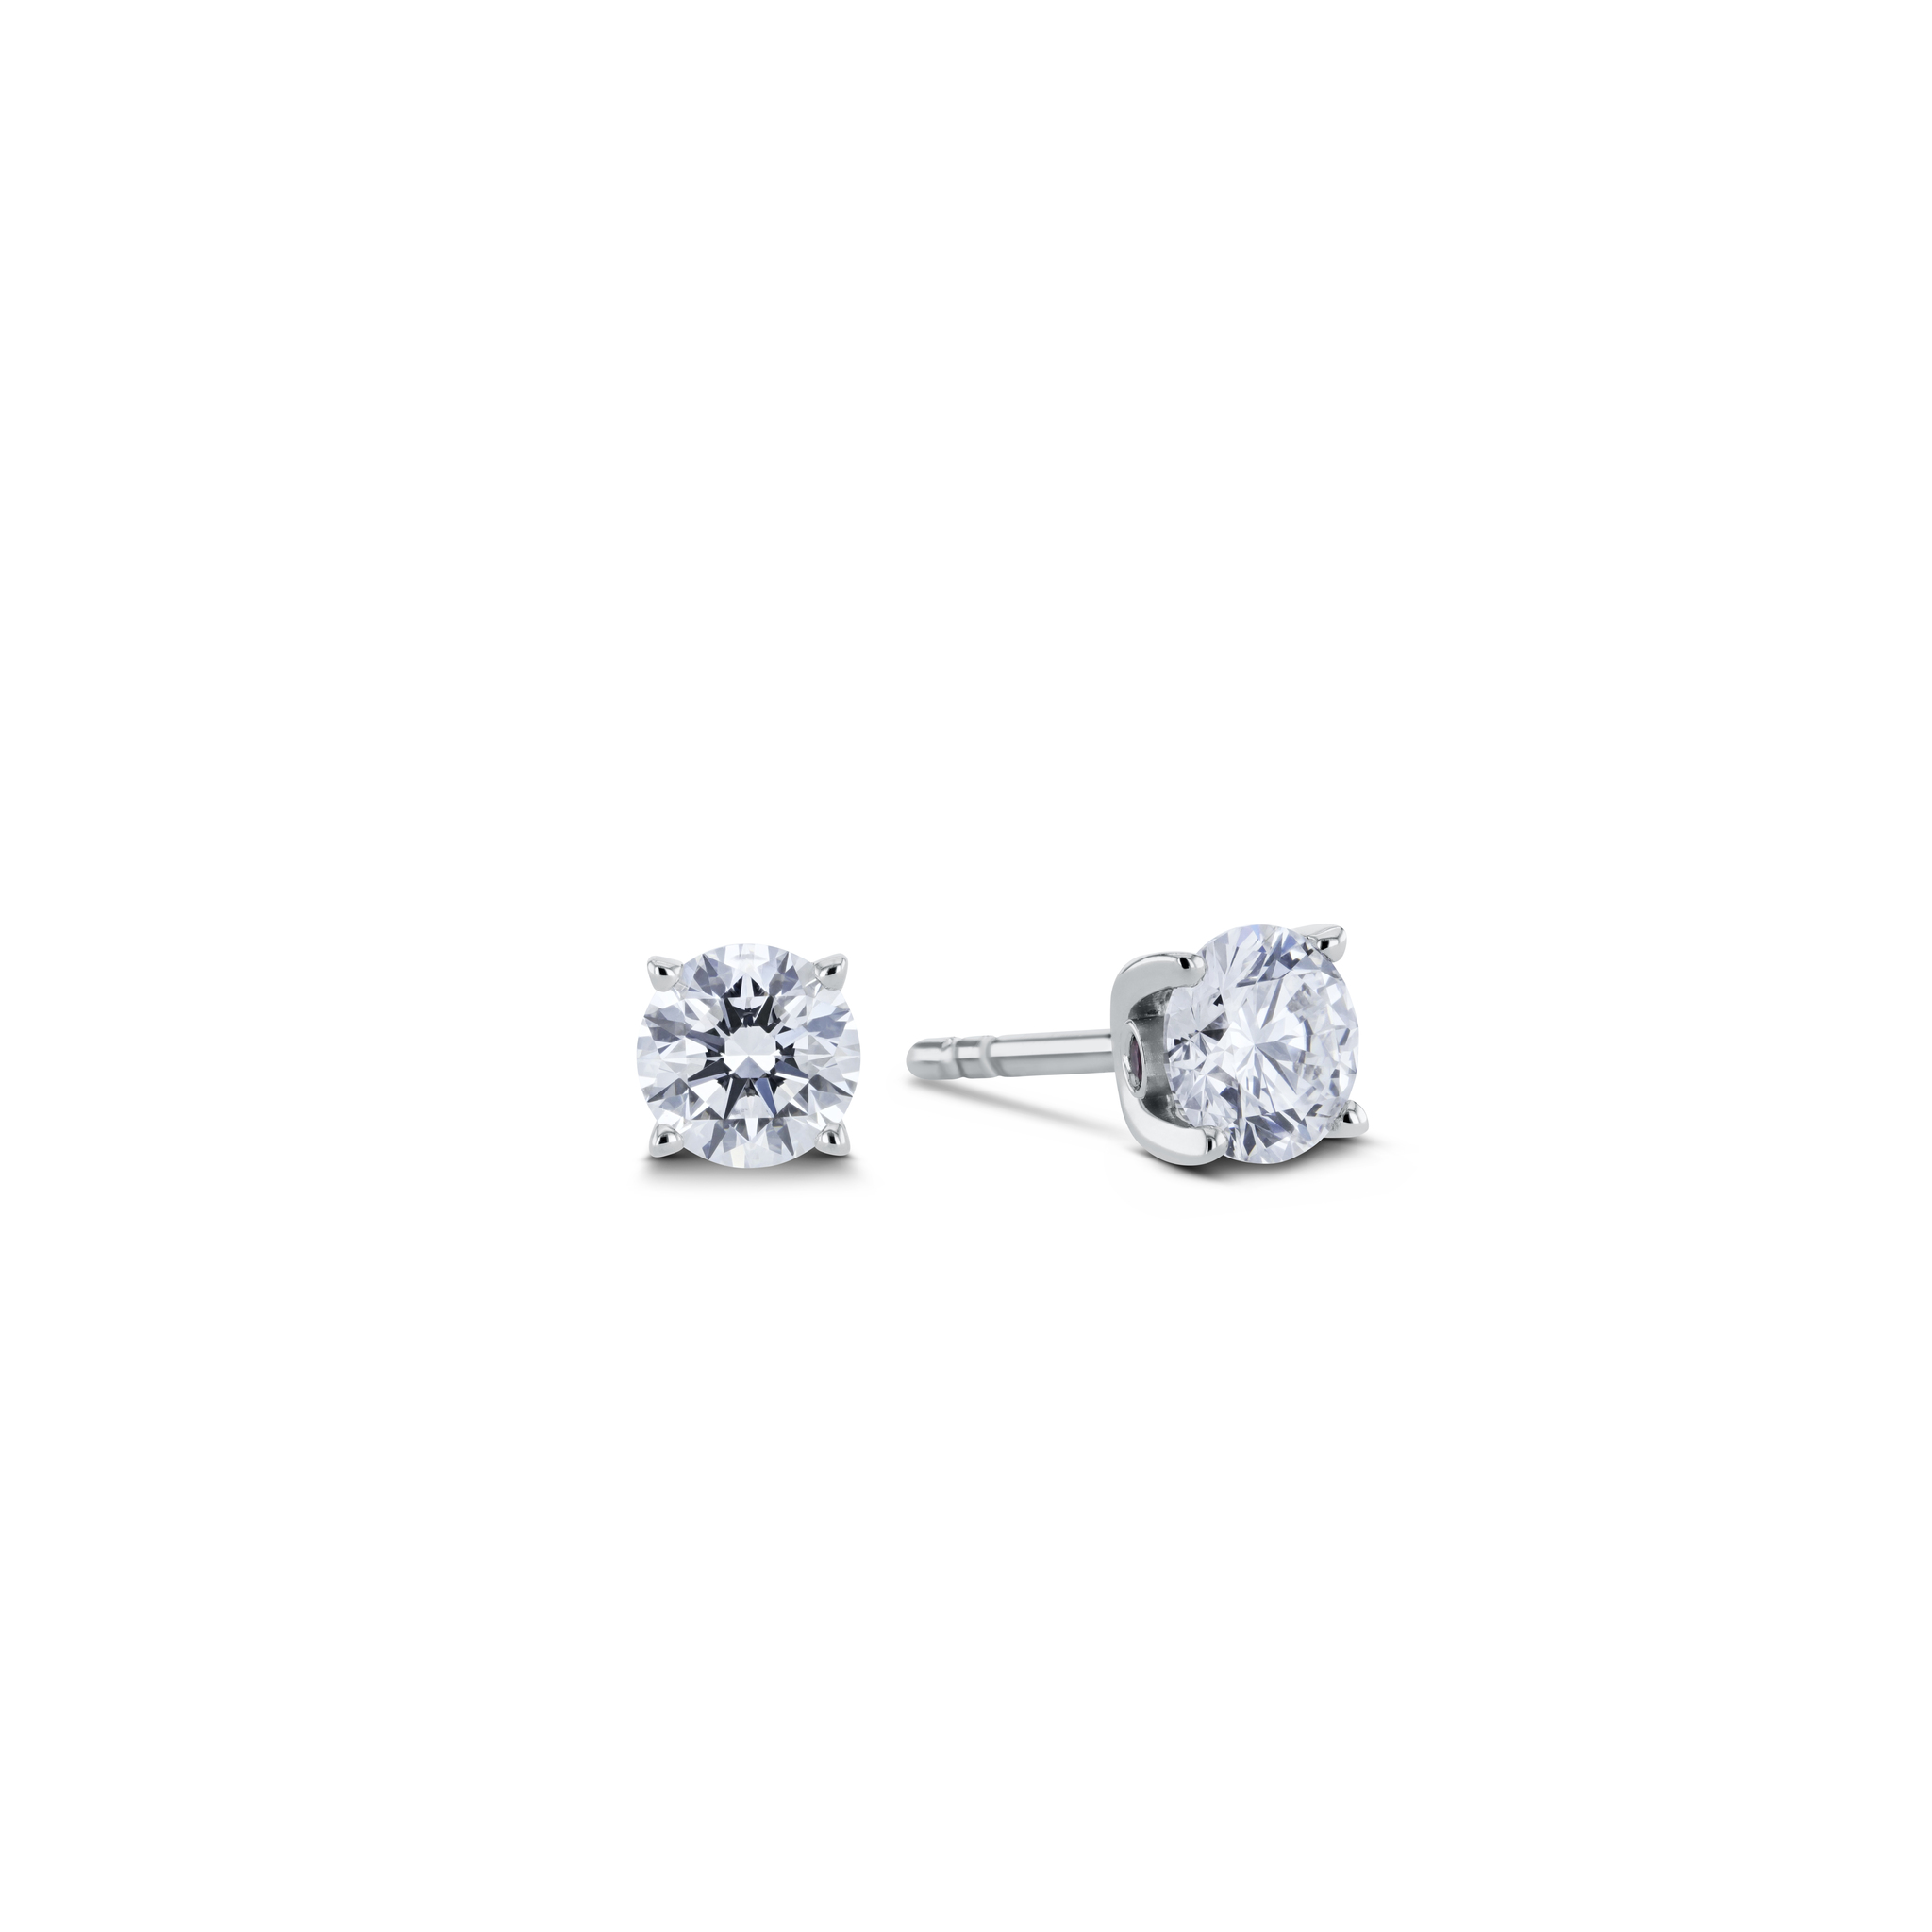 Solitaire earrings with diamonds